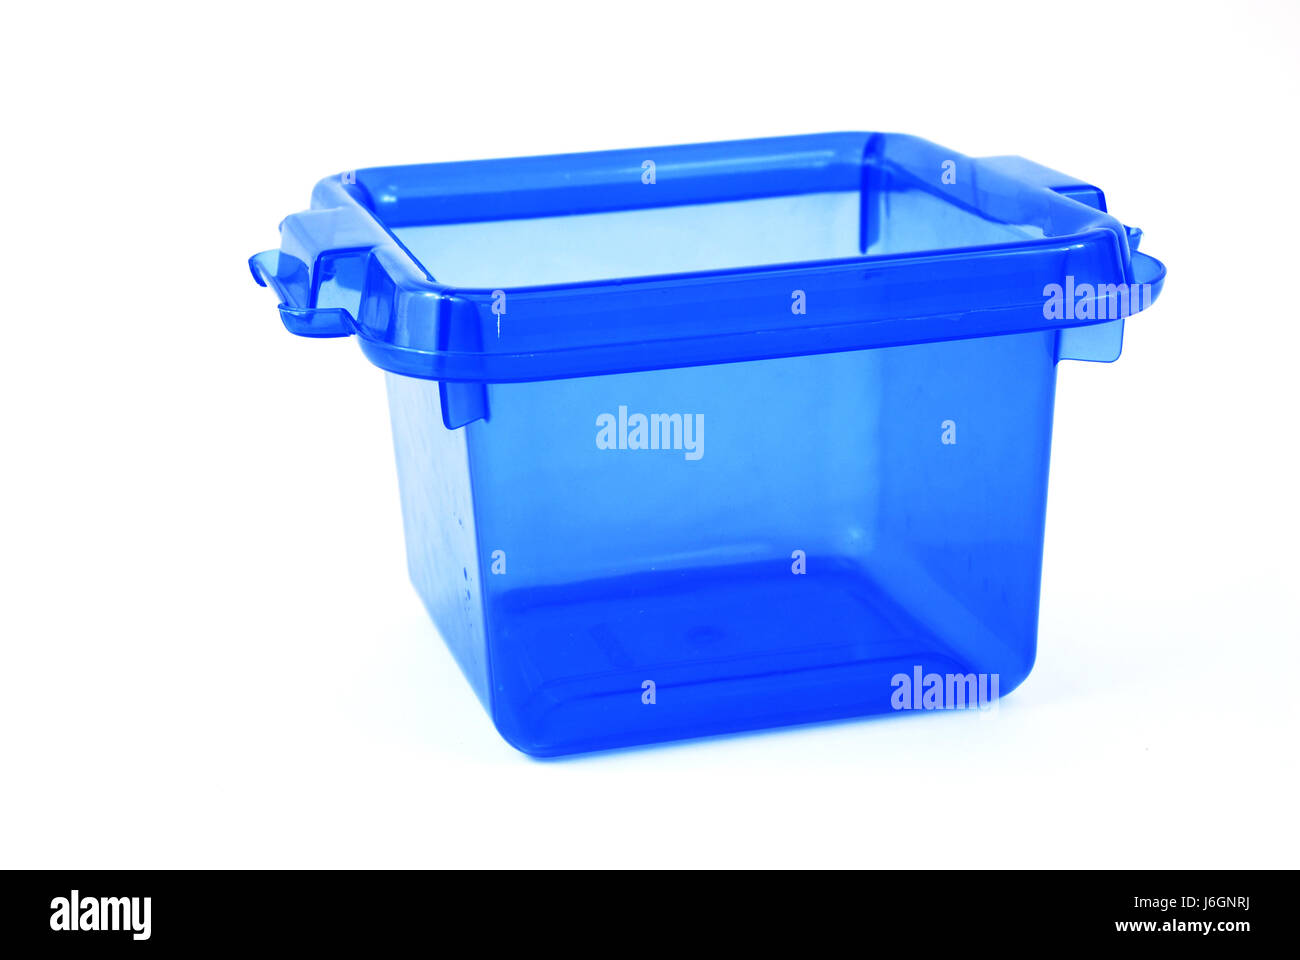 Blue Plastic Synthetic Material Store Bath Tub Tub Bathtub Storage Bin Blue